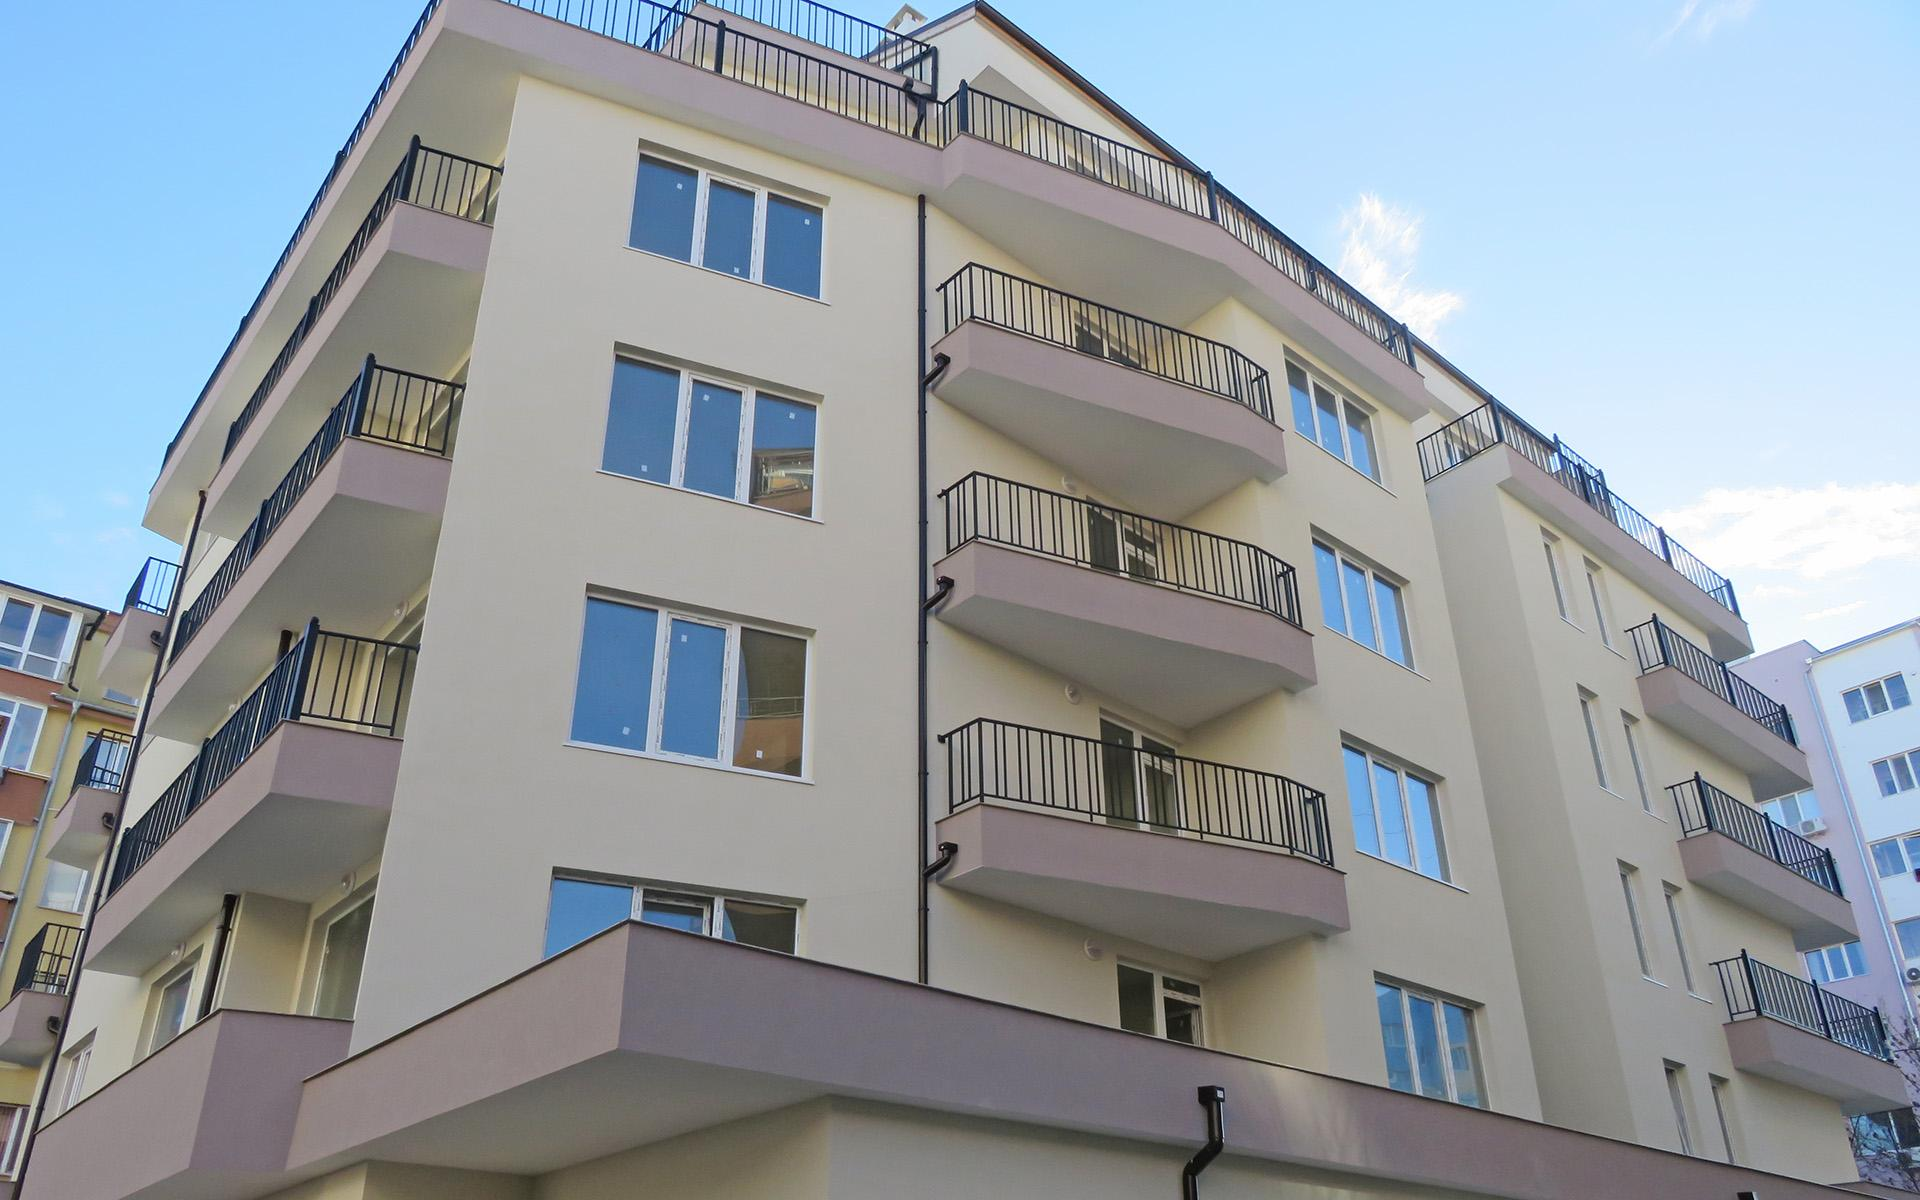 Residential Building at Burgas